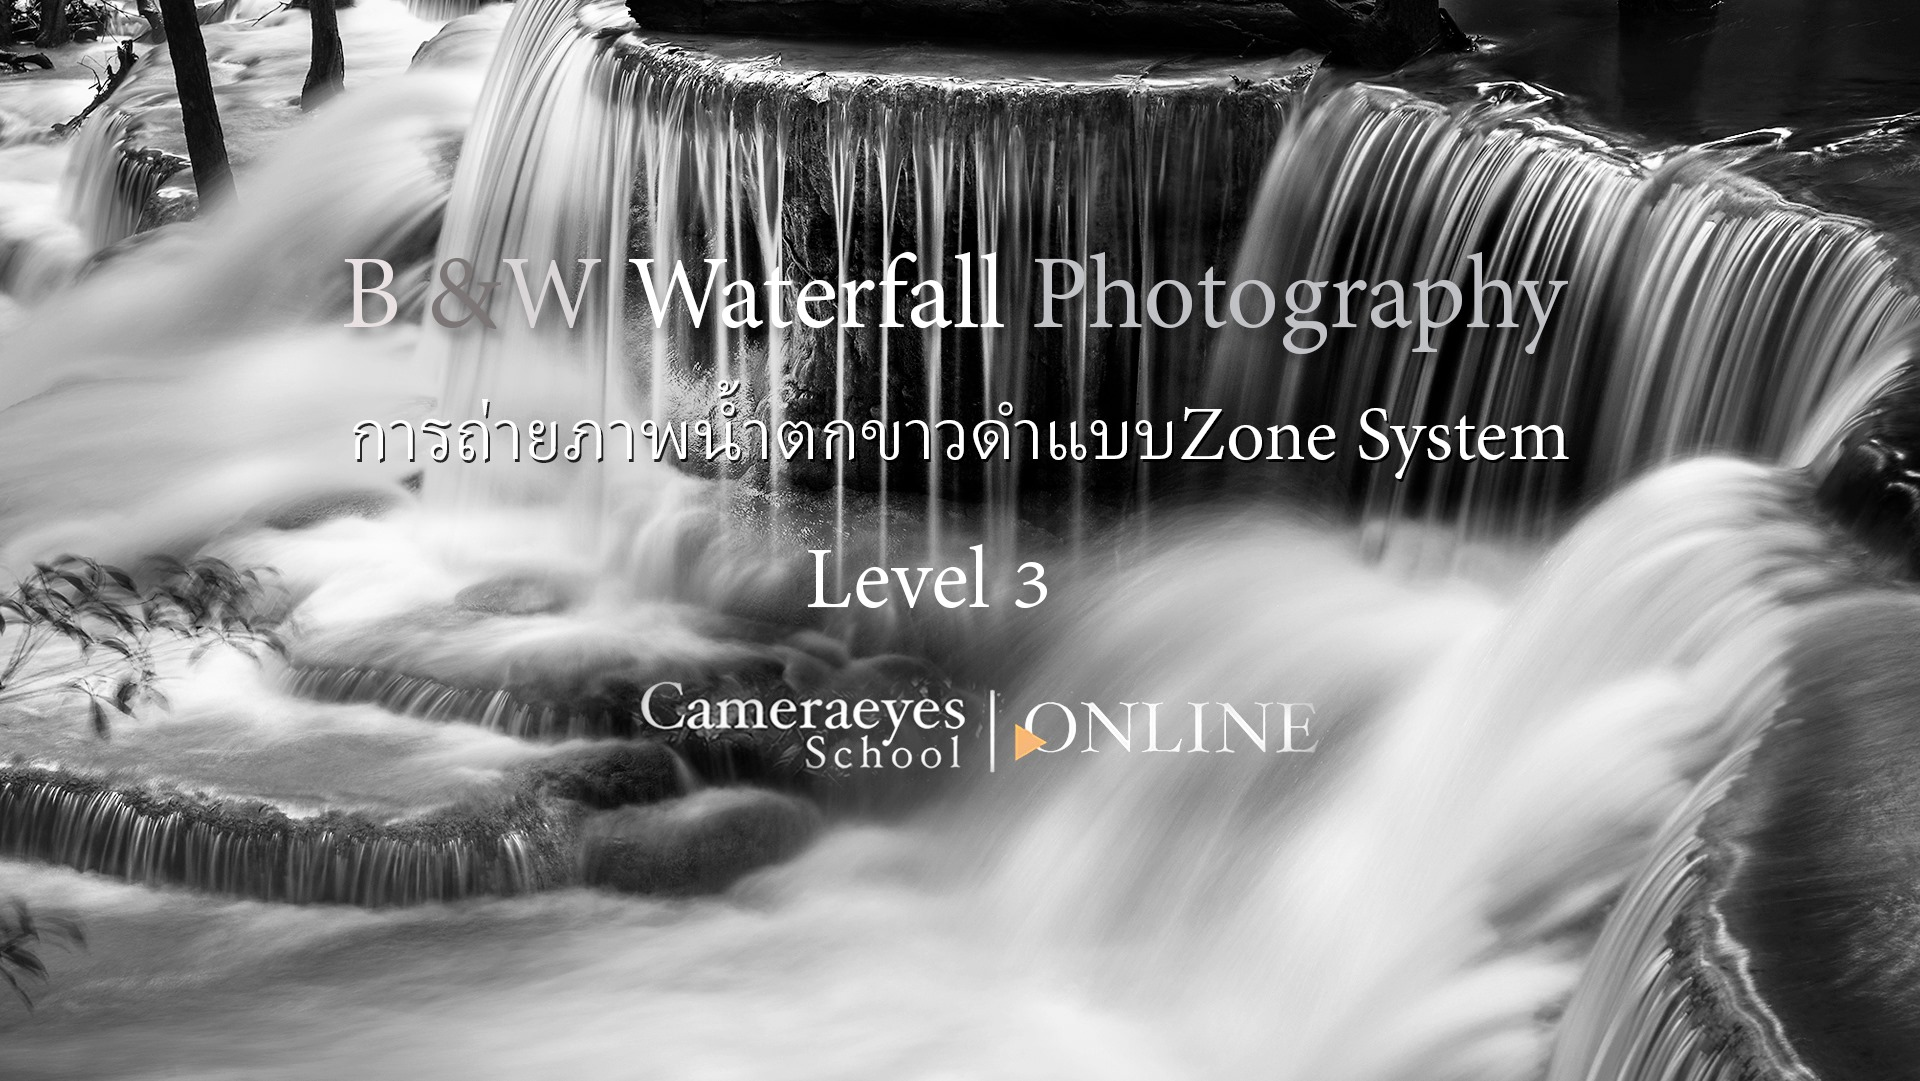 B&W Waterfall Photography